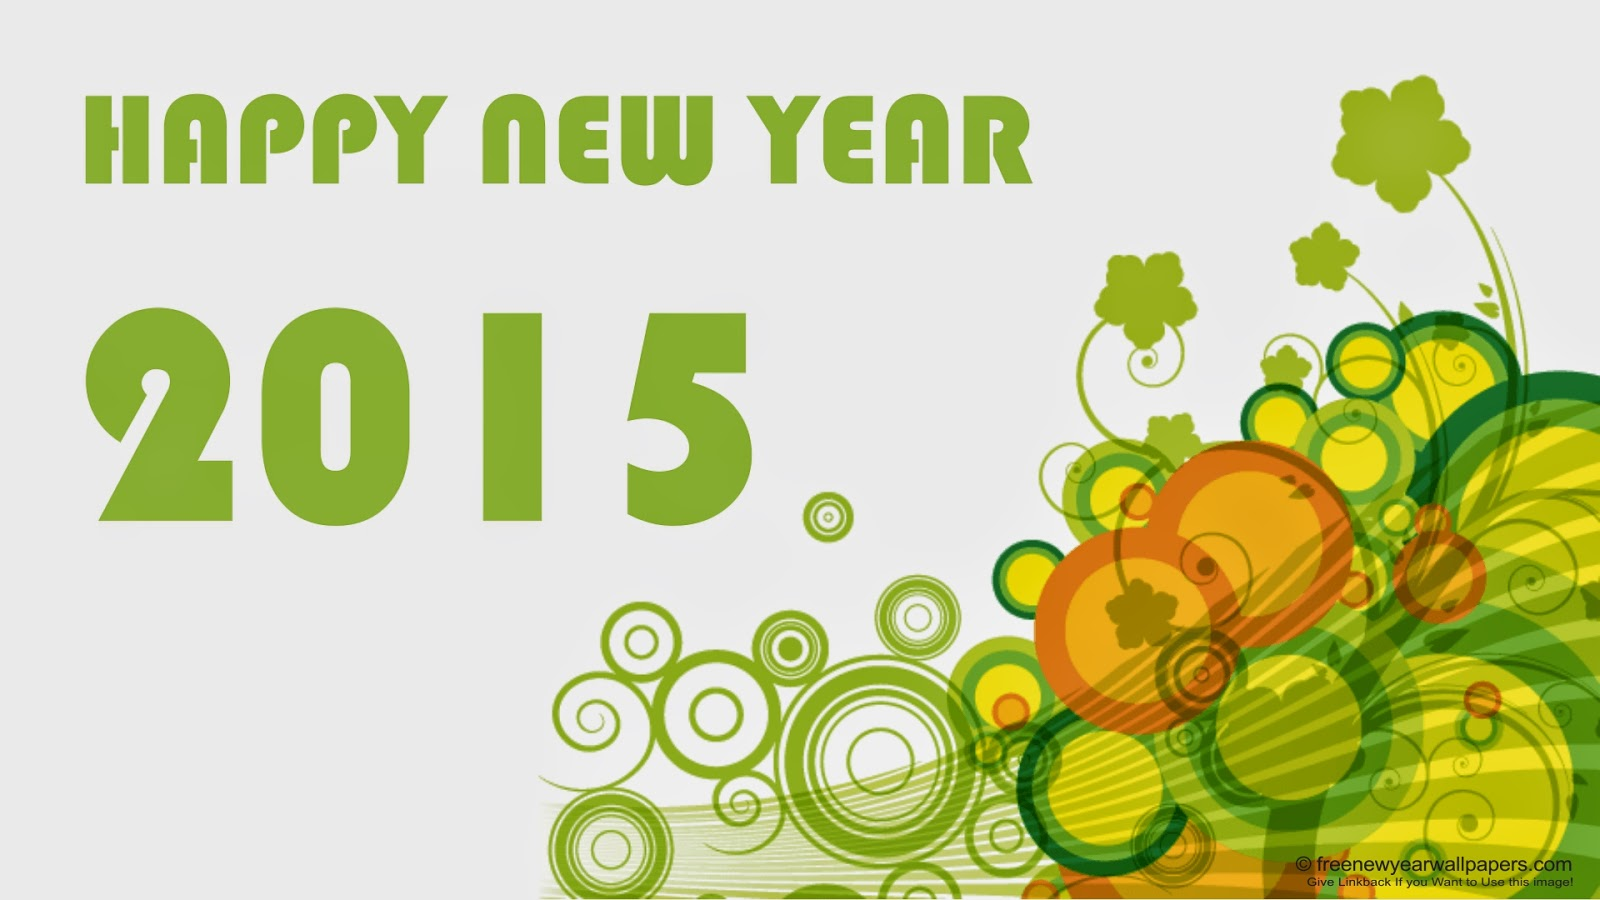 Wallpaper download new year 2015 - Happy New Year 2015 Wallpapers